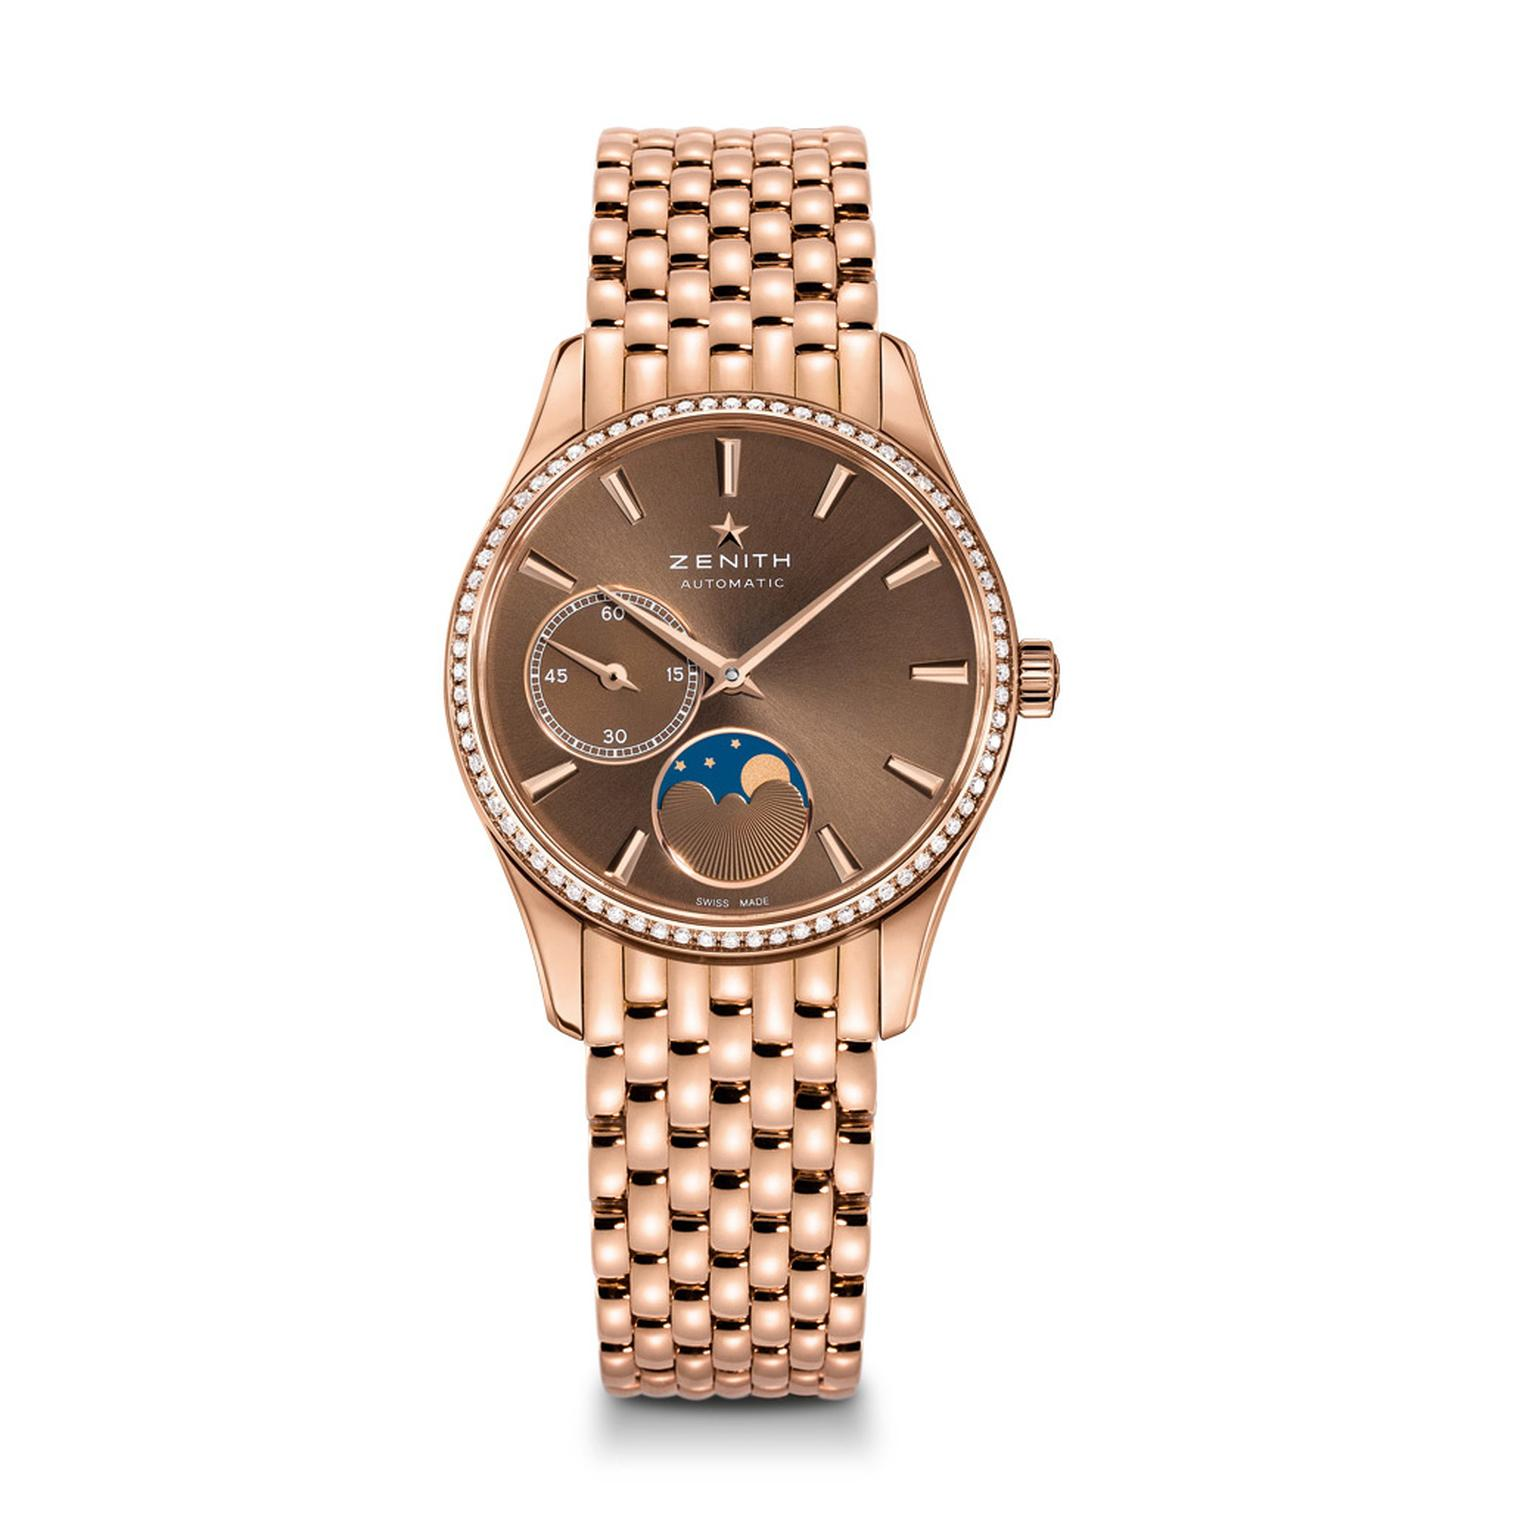 Zentih Ultra Thin Lady Moon phase watch